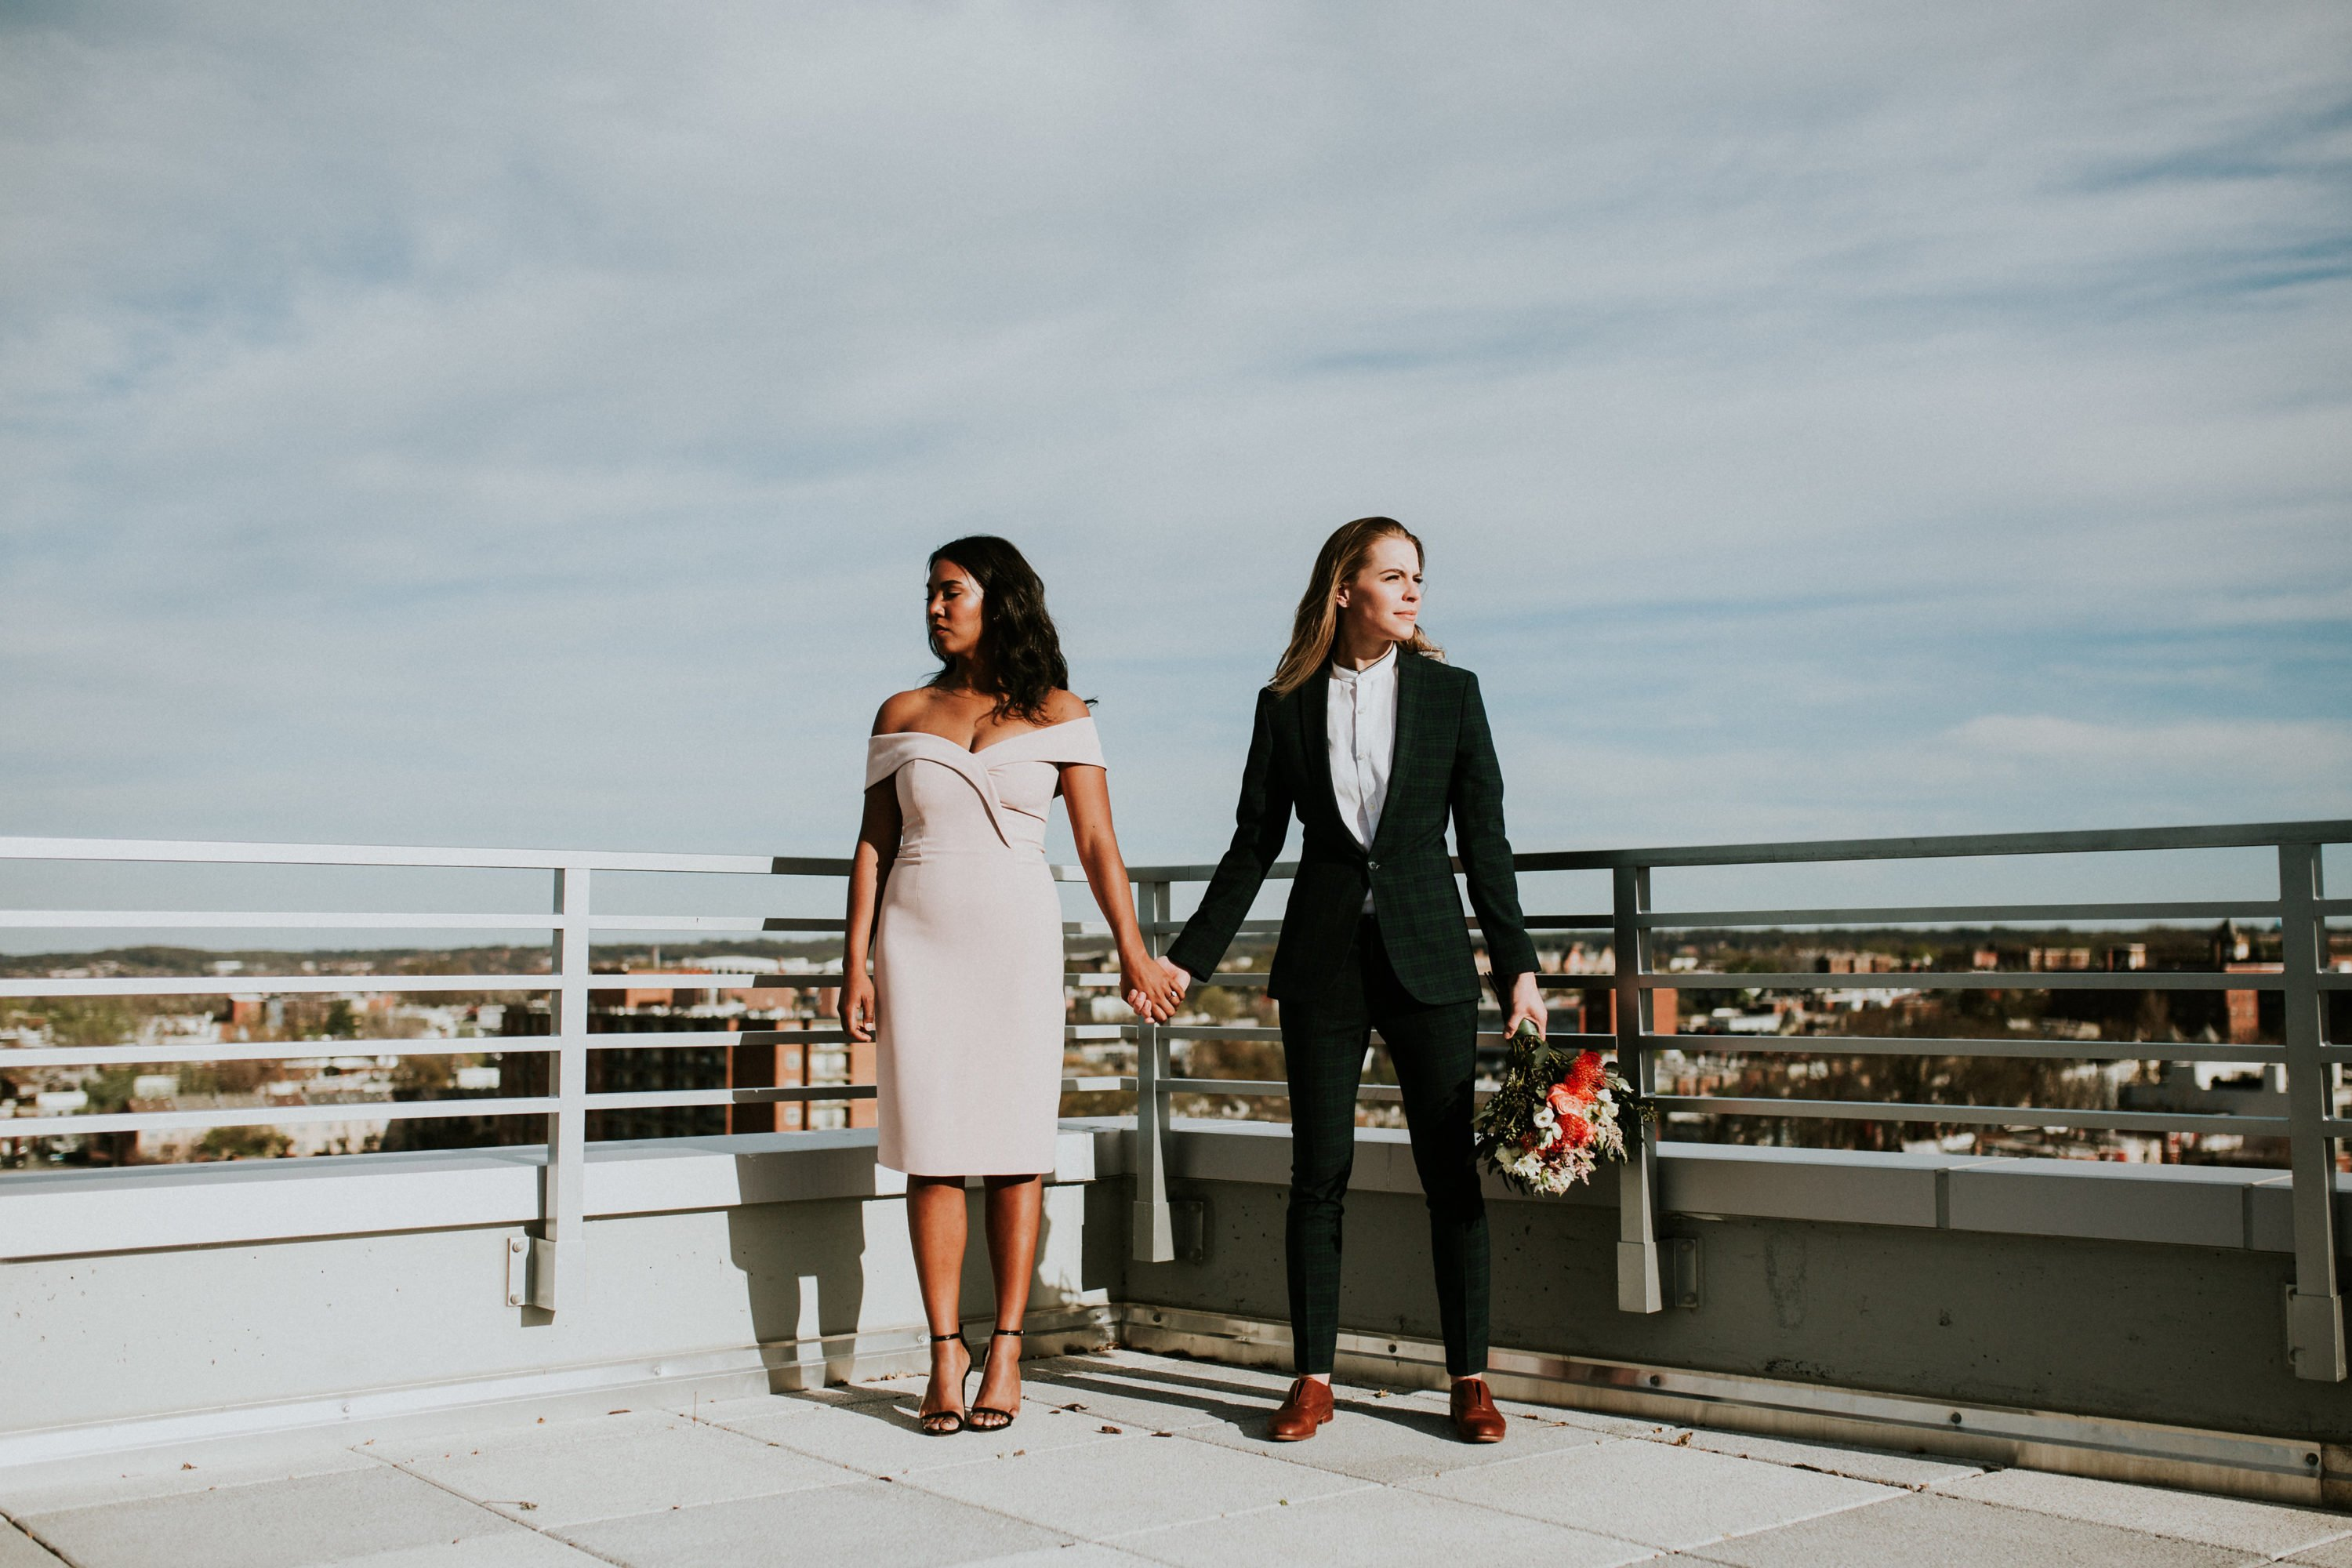 apollo dc mackenzie huffman nicole wyche stylish engagement shoot gay engagement washington dc